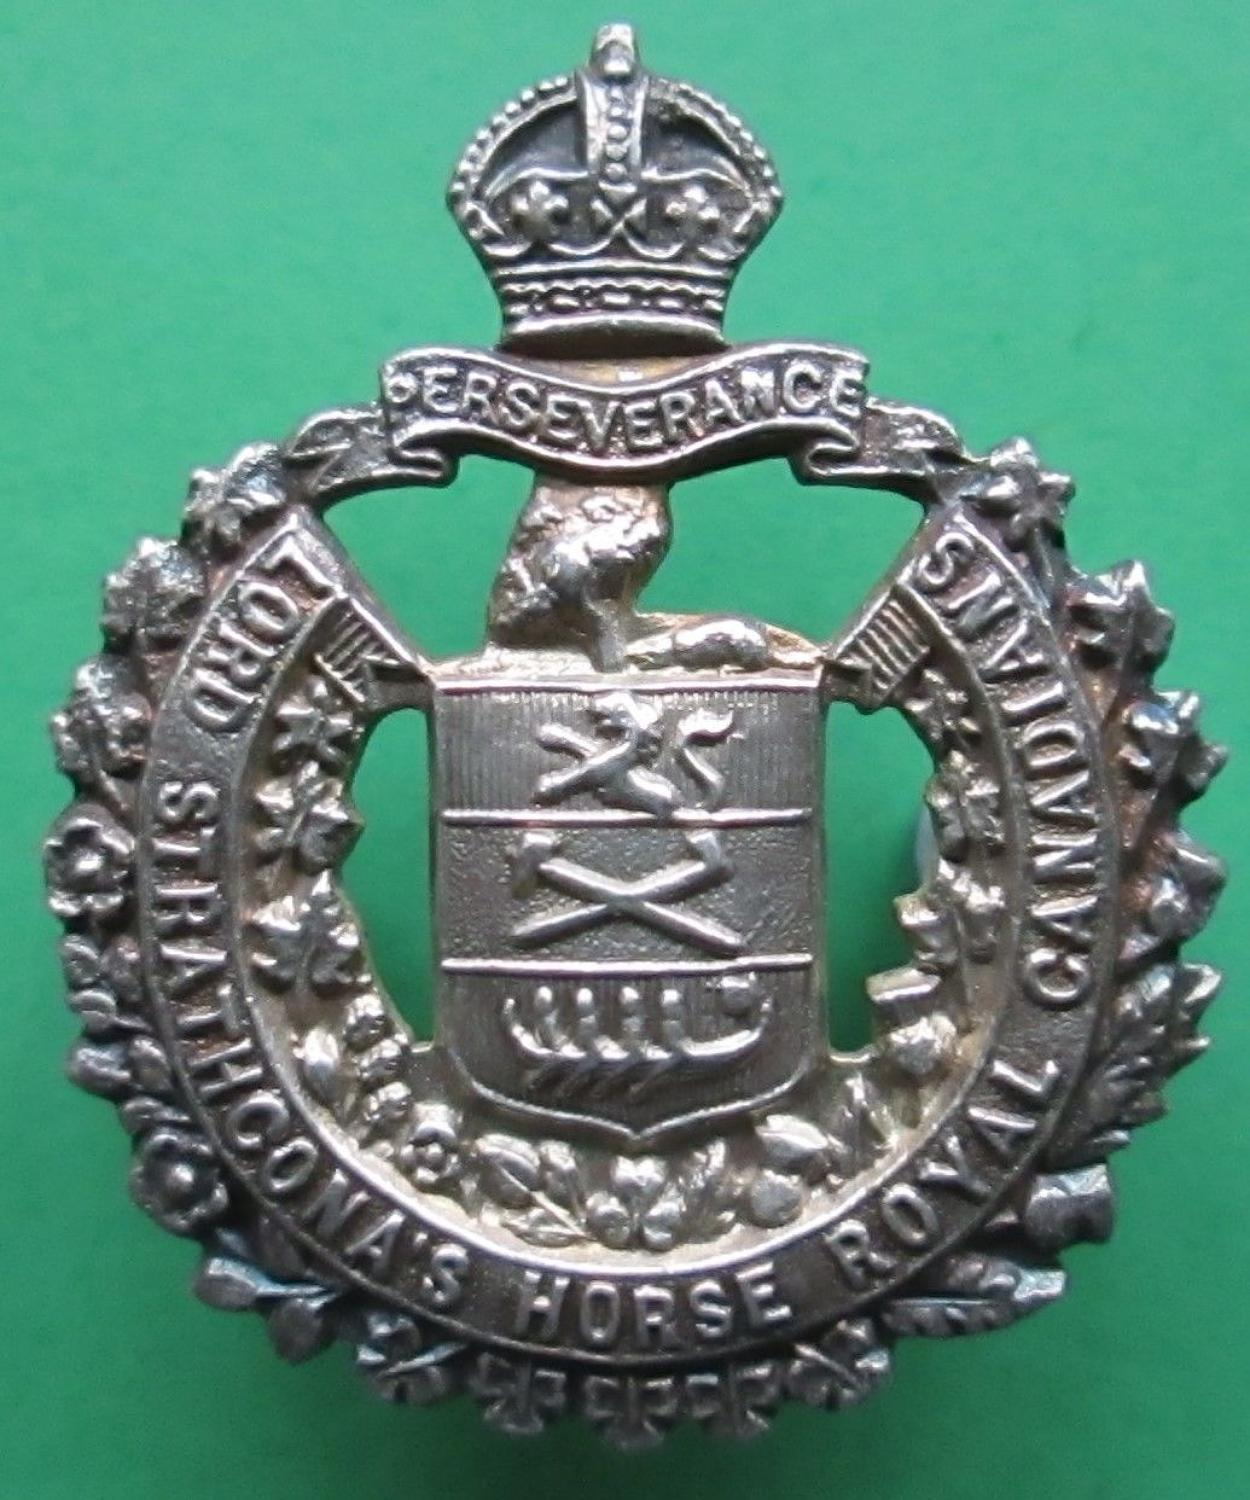 A OFFICERS SILVER LORD STRATHCONA'S HORSE ROYAL CANADIANS COLLAR BADGE